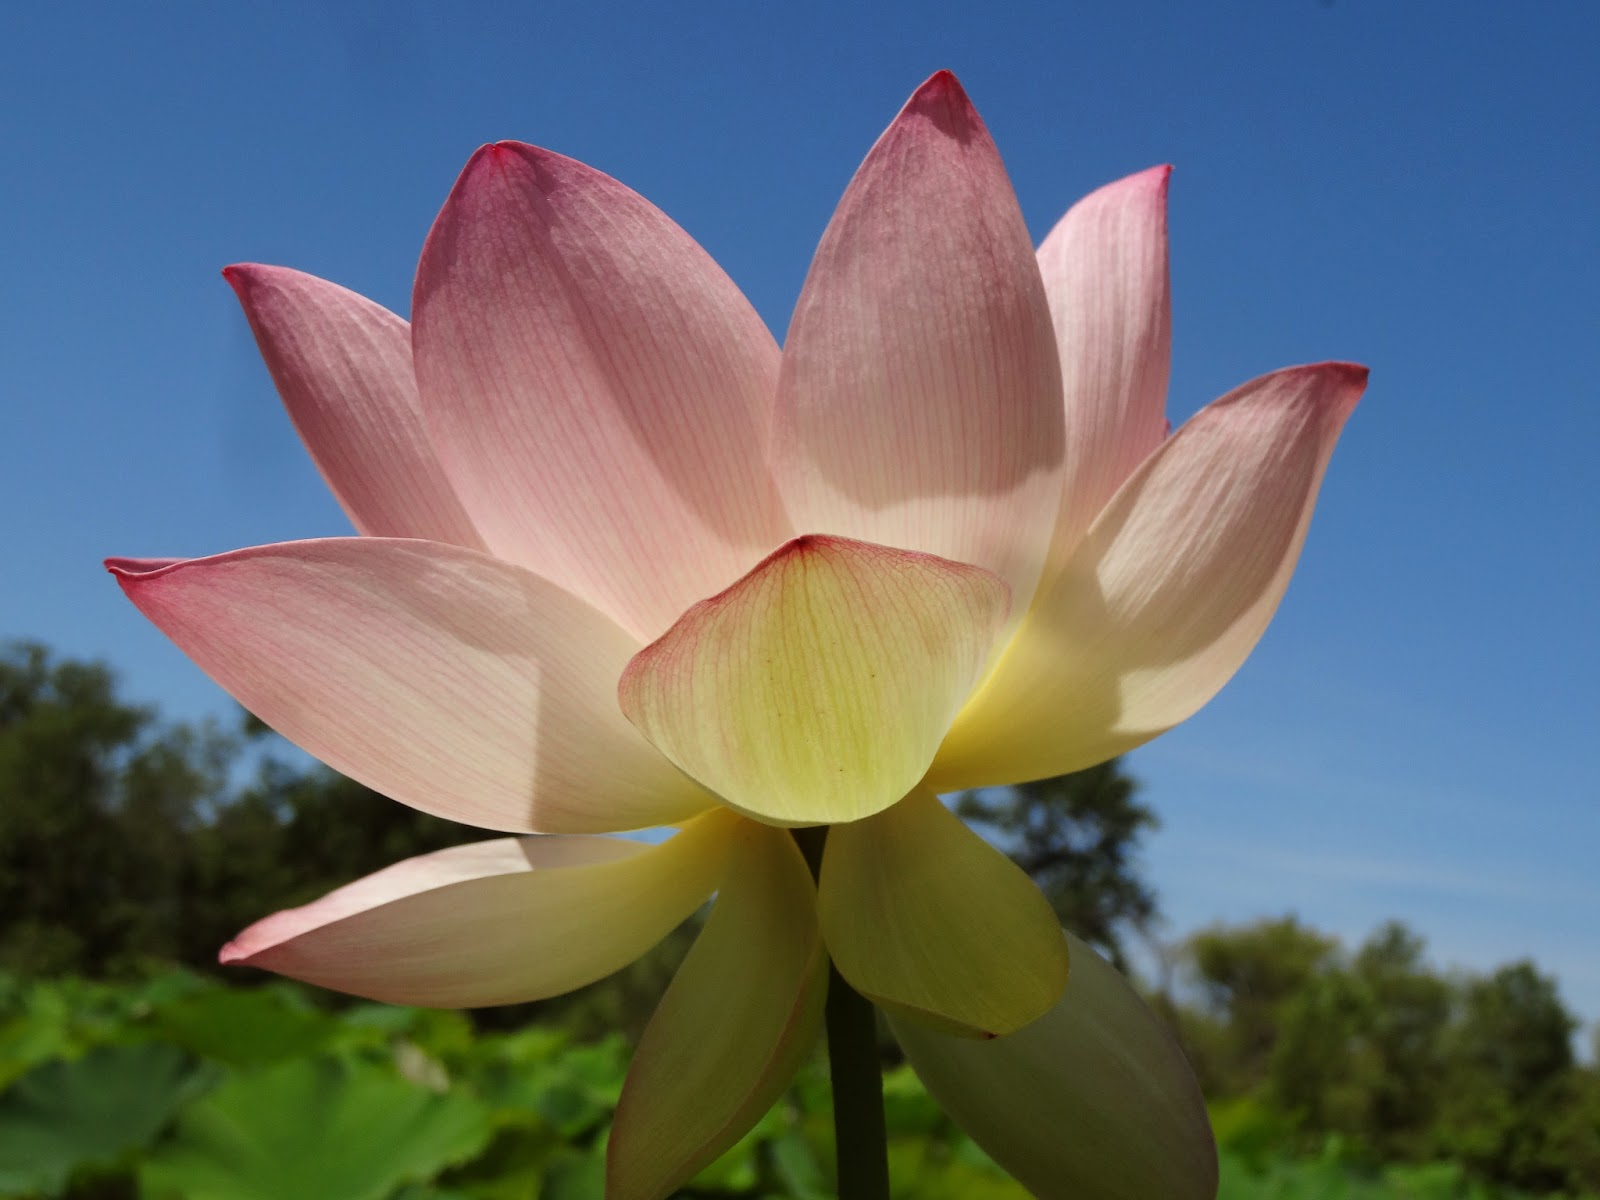 Poem on lotus flower images flower decoration ideas love joy and peas lotus flower photos haiku poem lotus flower photos haiku poem mightylinksfo izmirmasajfo